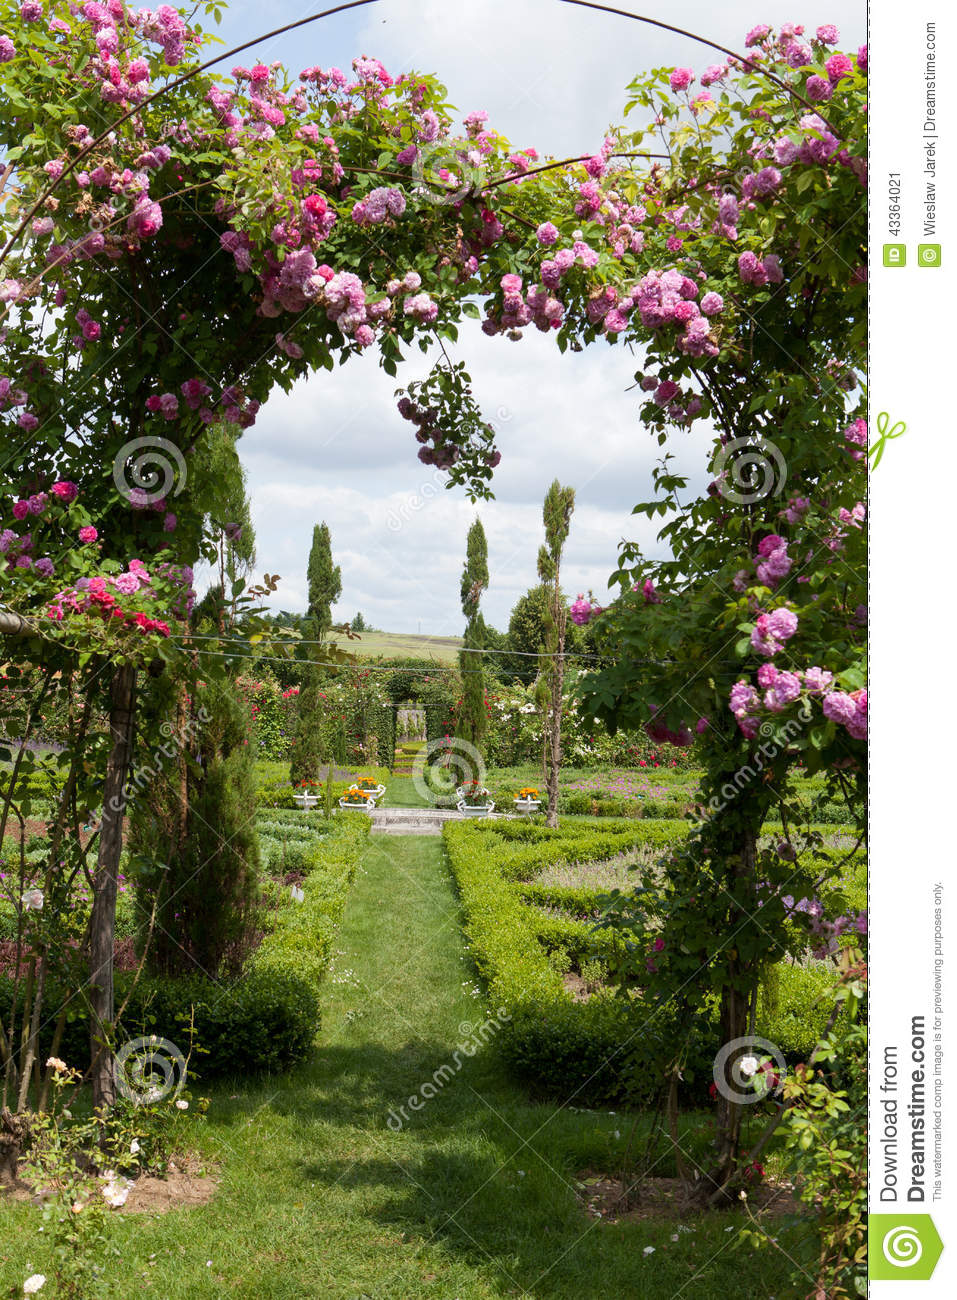 The romantic alley-way in the pergola from roses